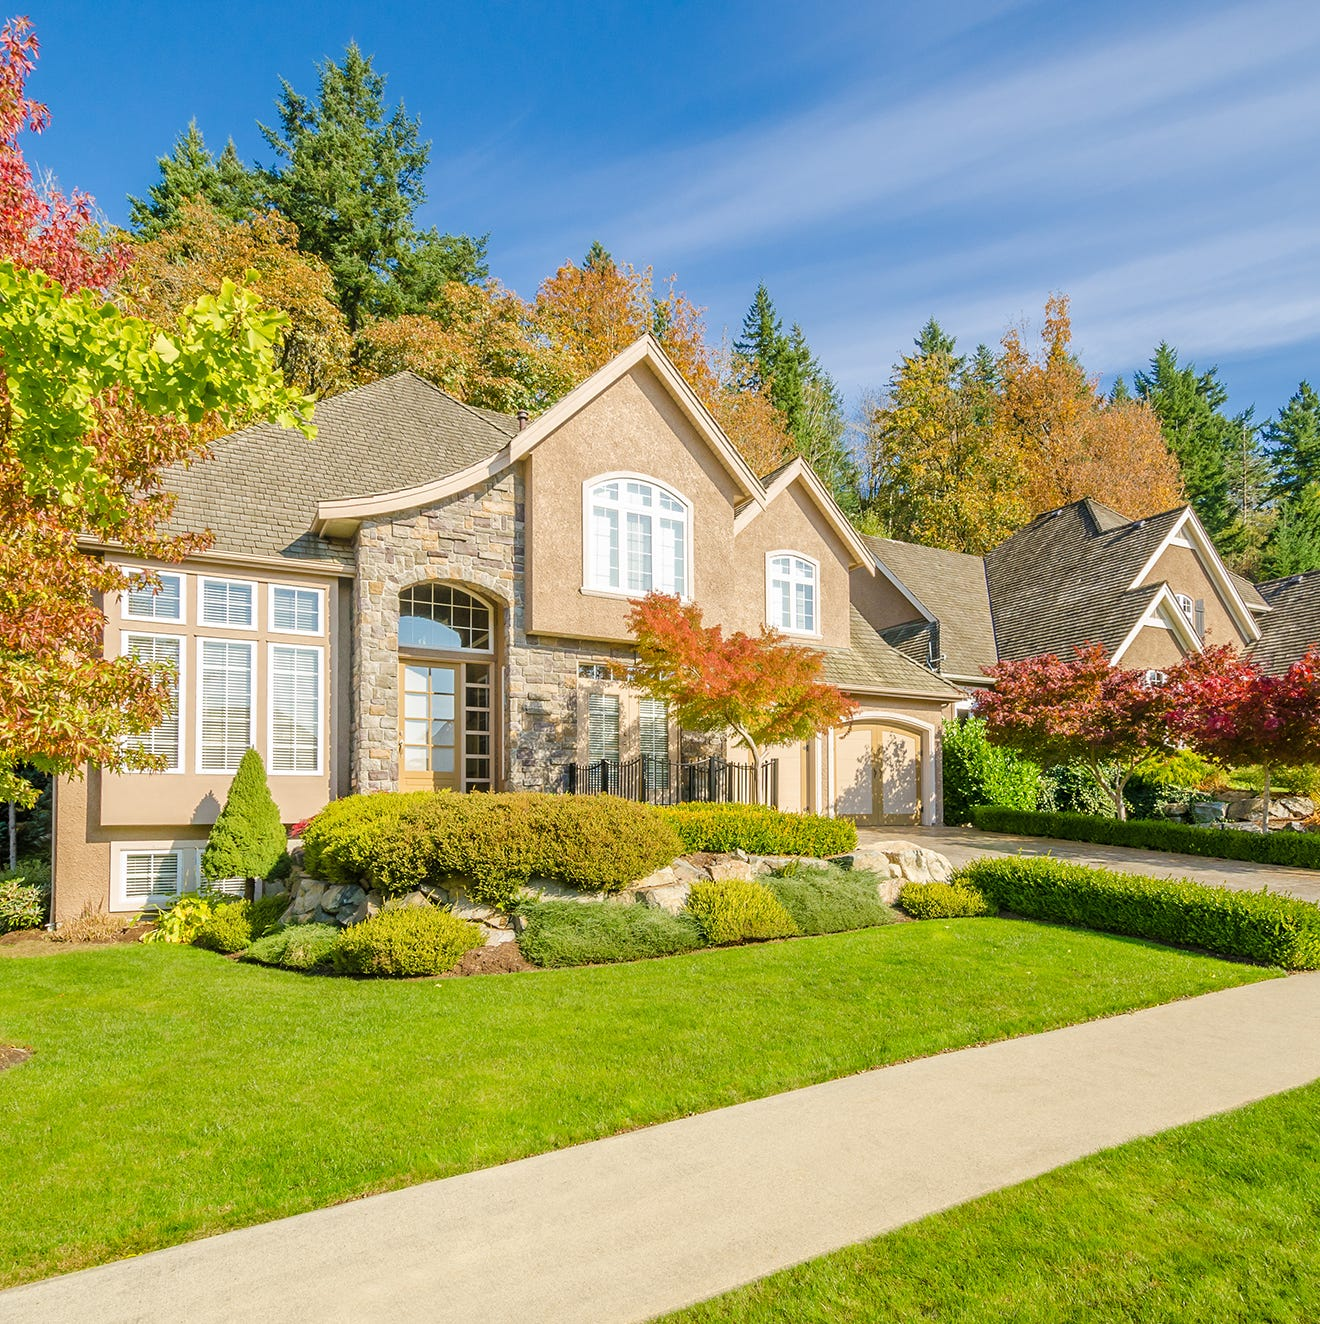 What's in Store For the Fall Housing Market?